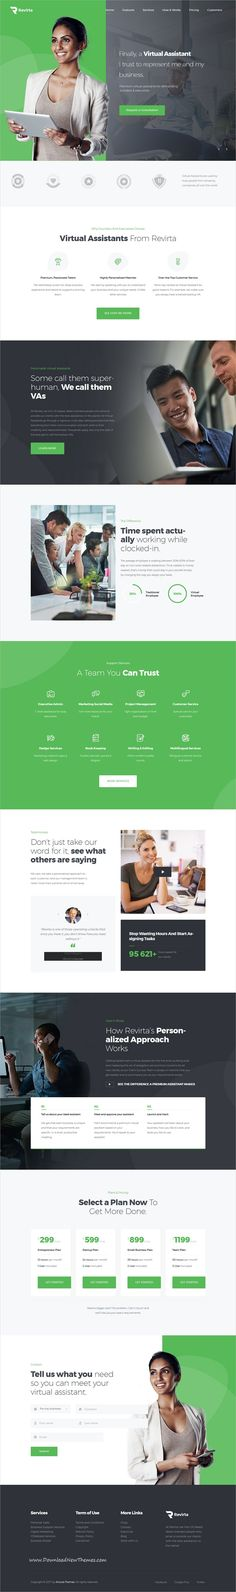 Revirta is clean and modern design 3in1 responsive #WordPress theme for #virtual assistants, #advisers or aids managers #website to live preview & download click on Visit